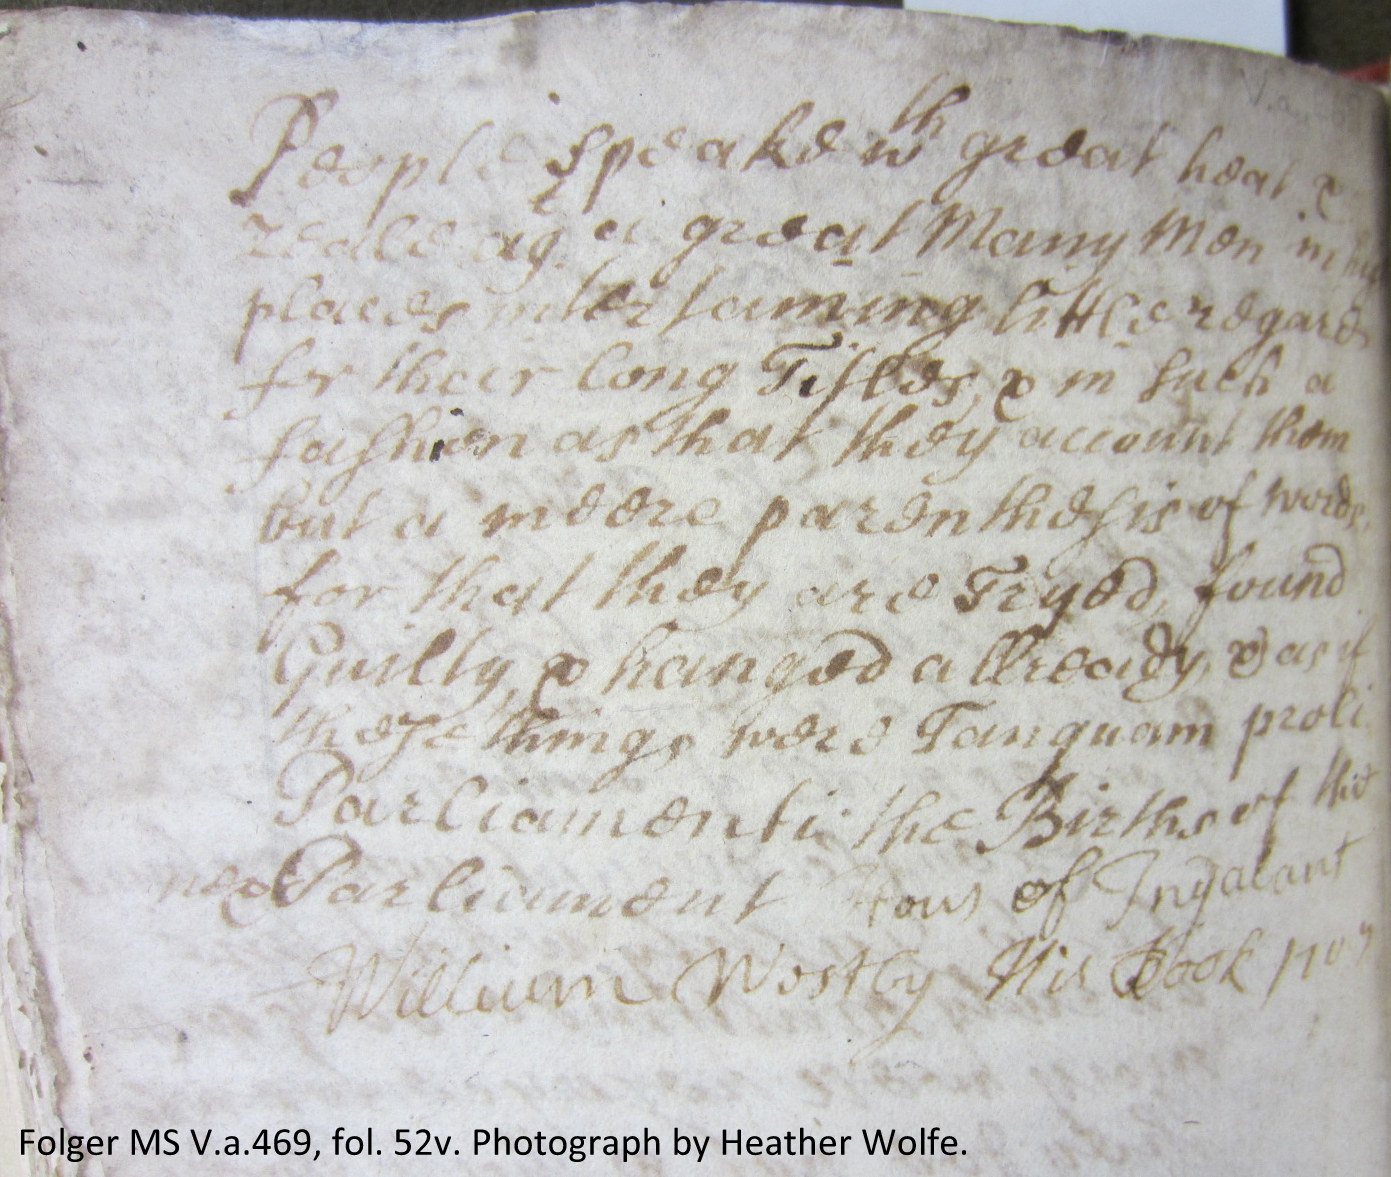 Last page of diary with William Westby's ownership inscription.